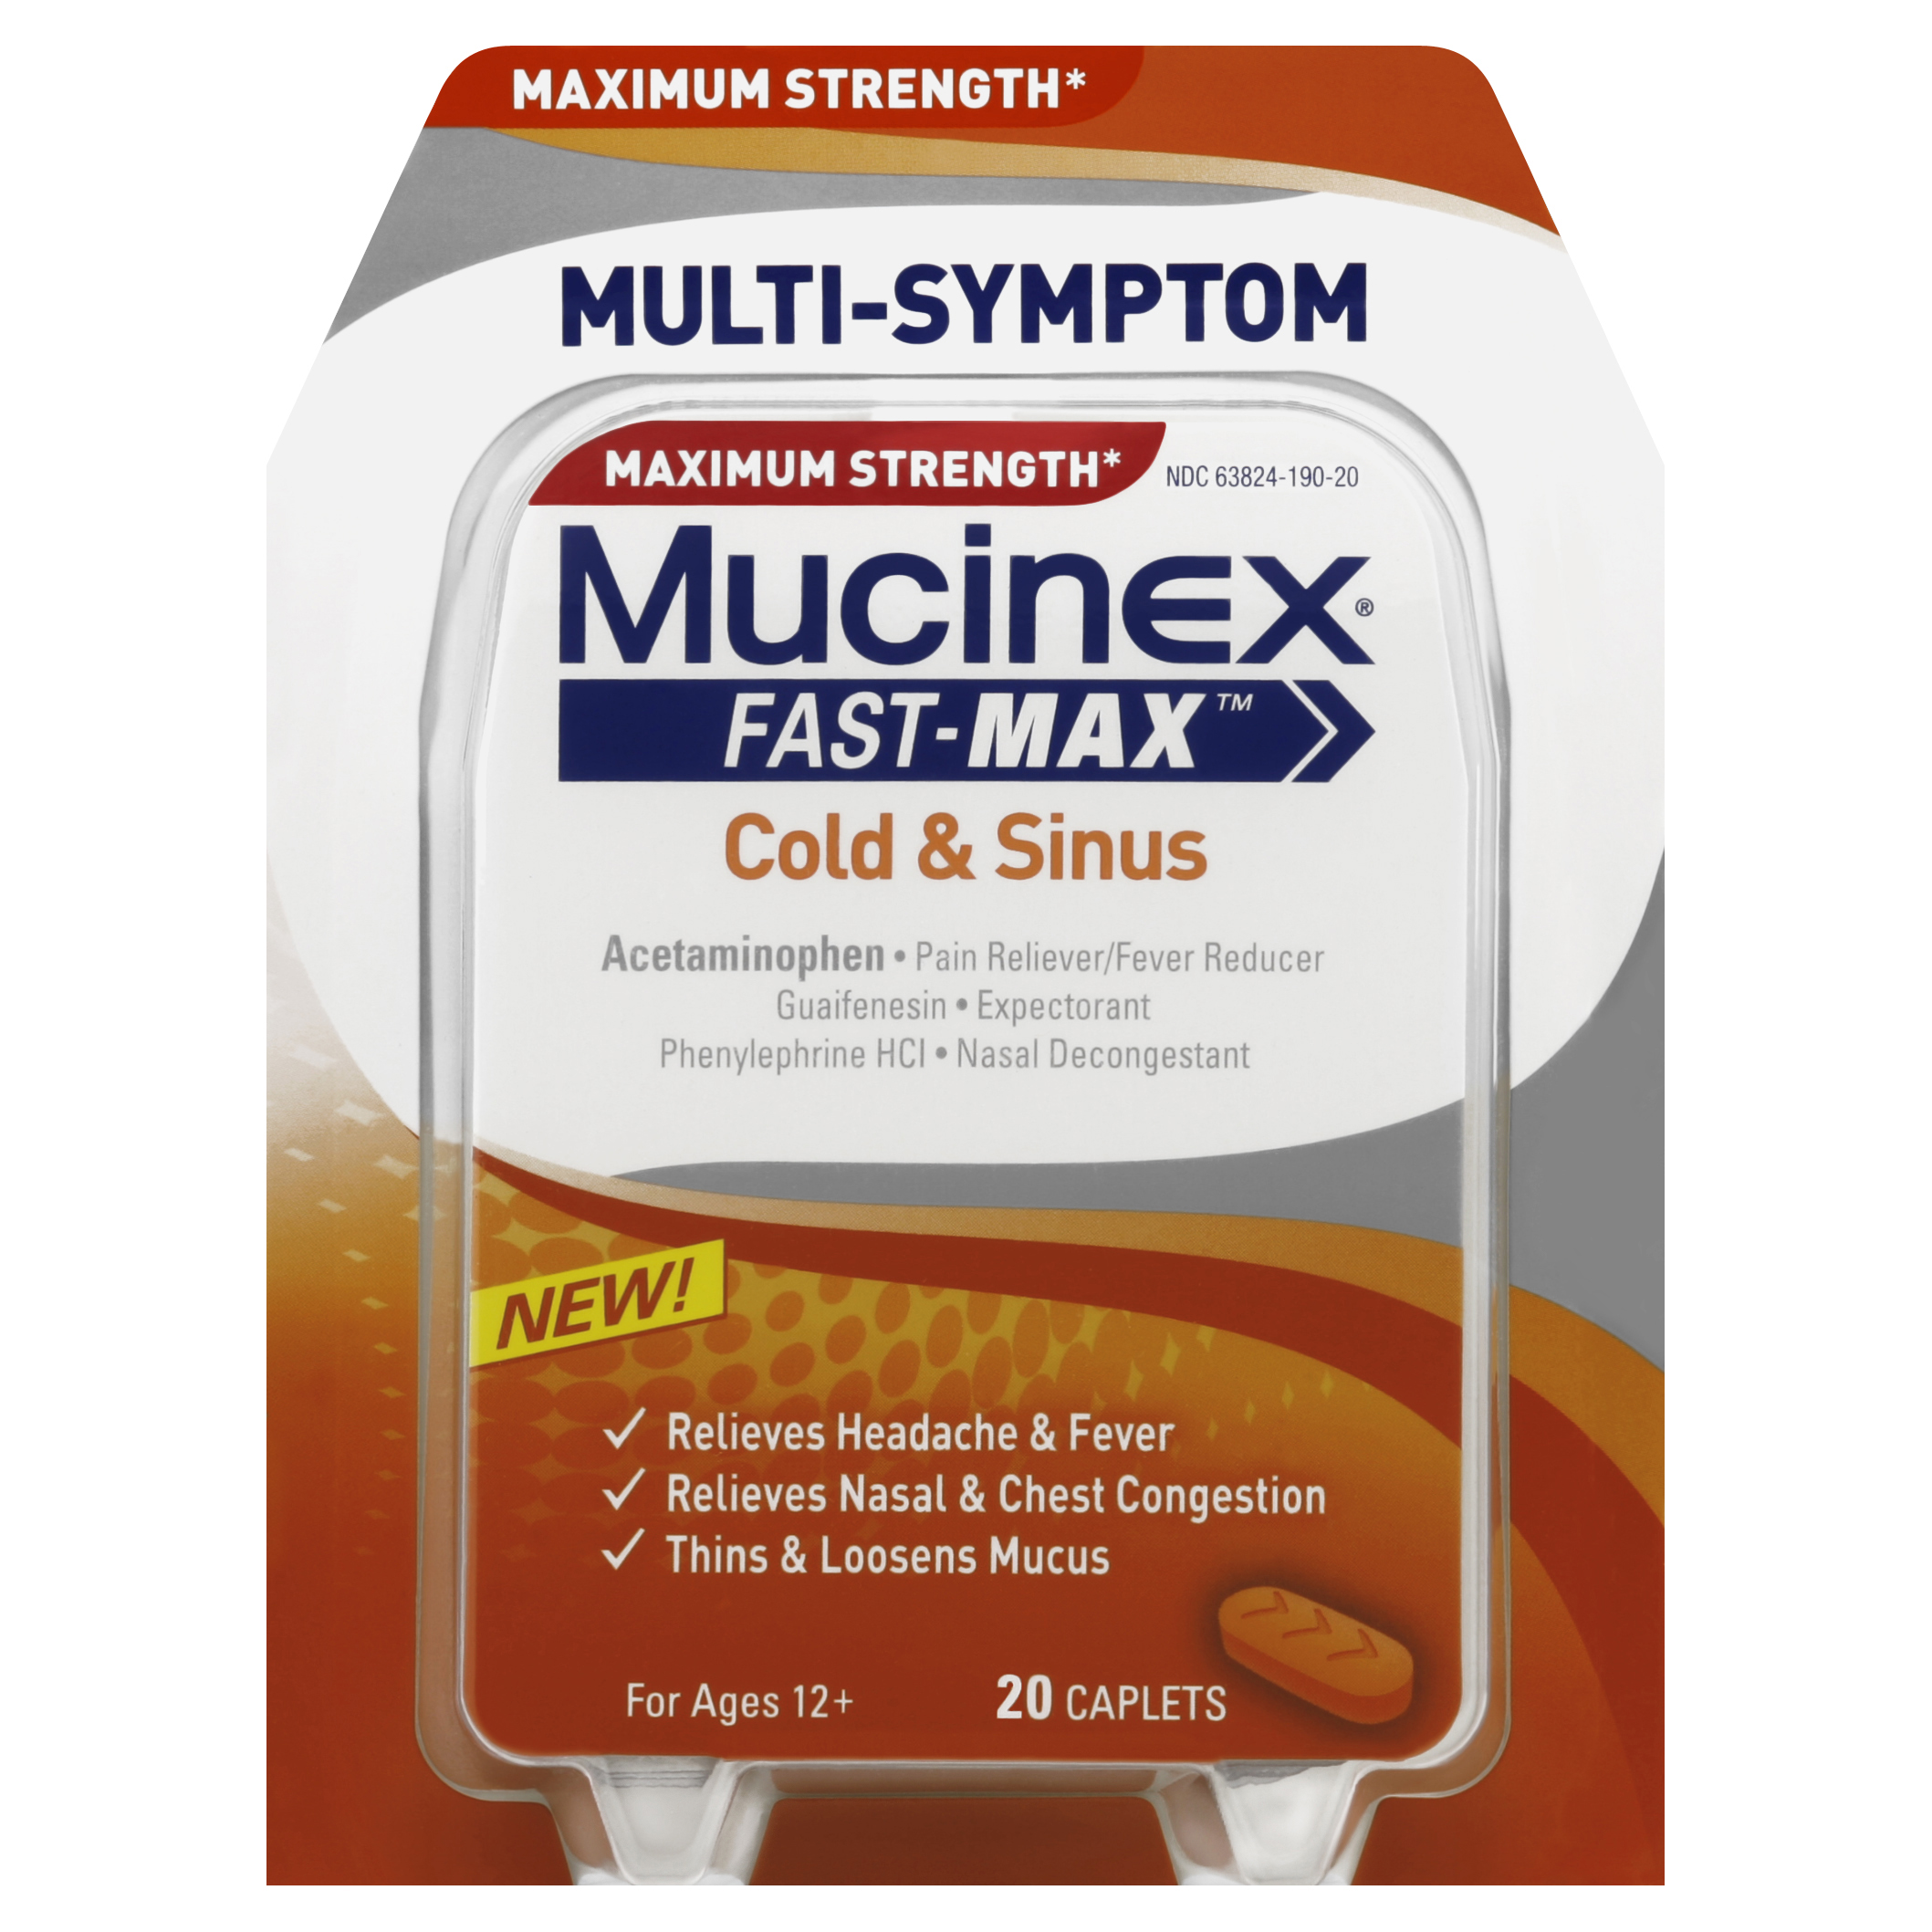 Mucinex Fast-Max Adult Cold and Sinus Caplets, 20 Count